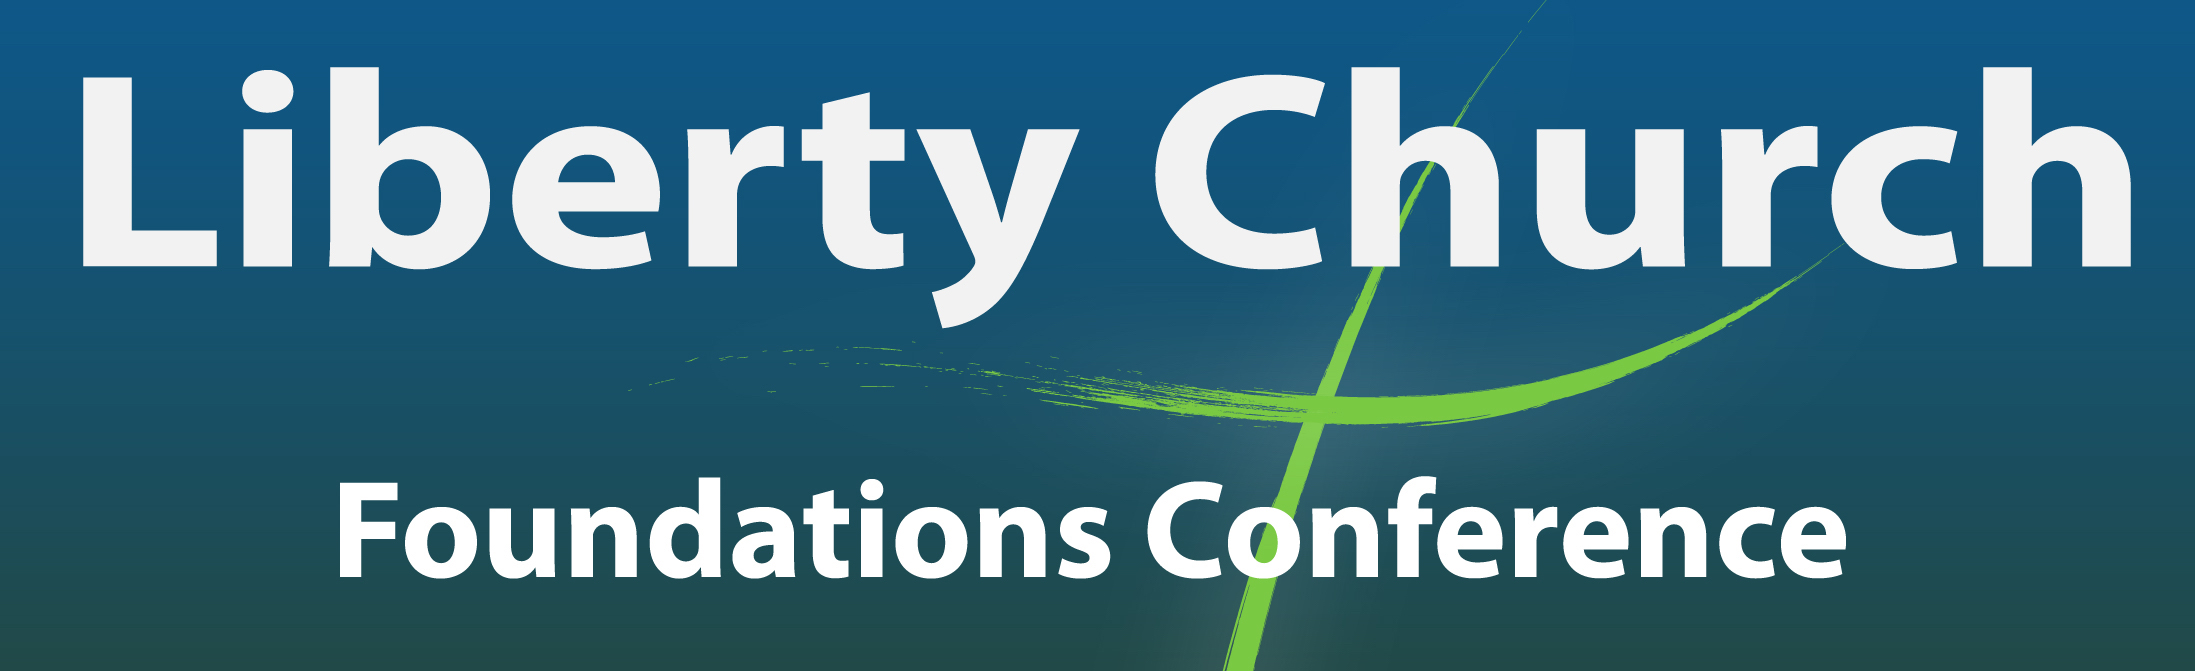 Liberty foundations conference banner